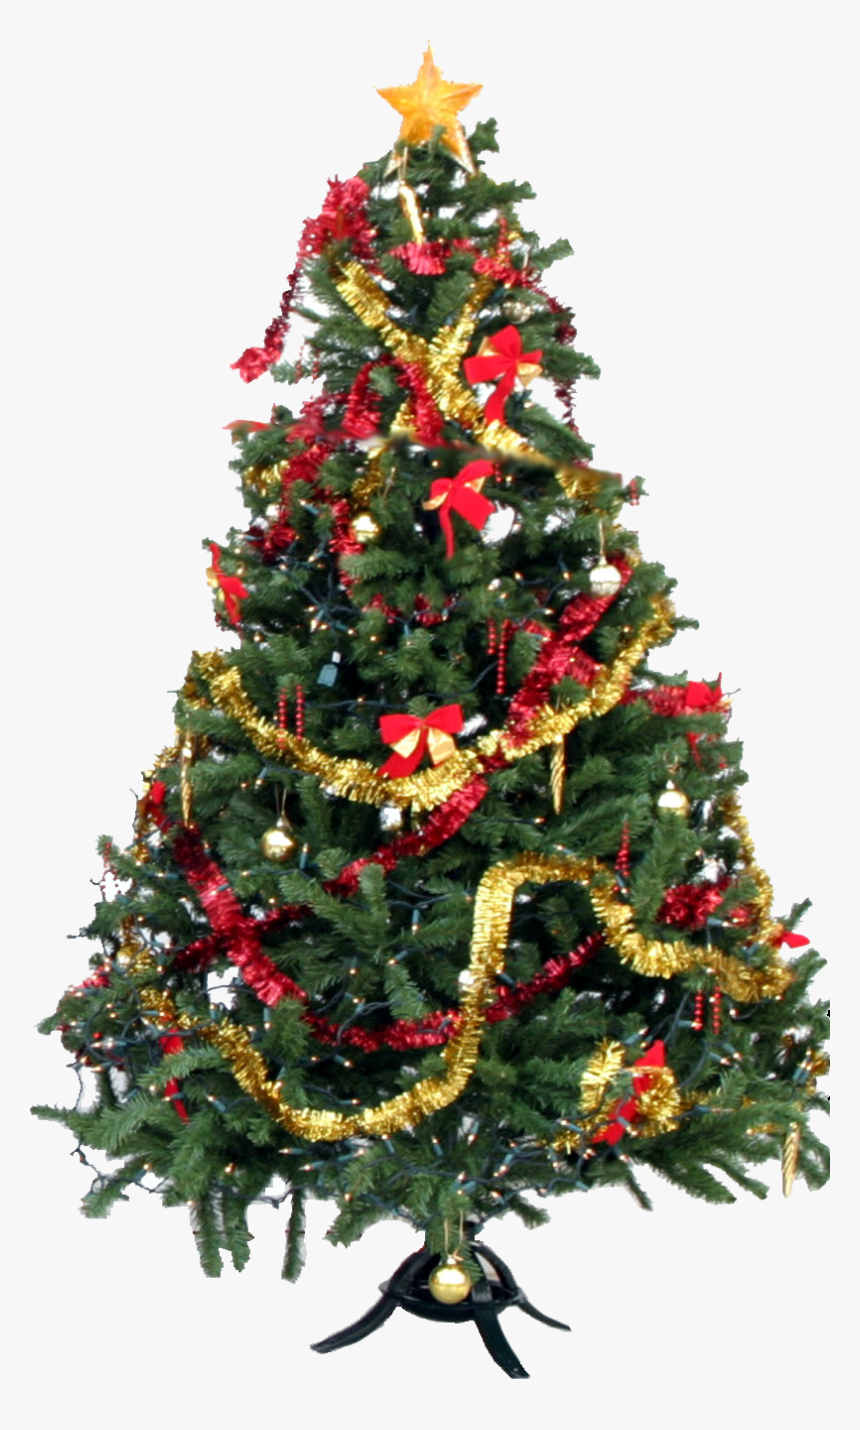 25 December Christmas Day, HD Png Download, Free Download